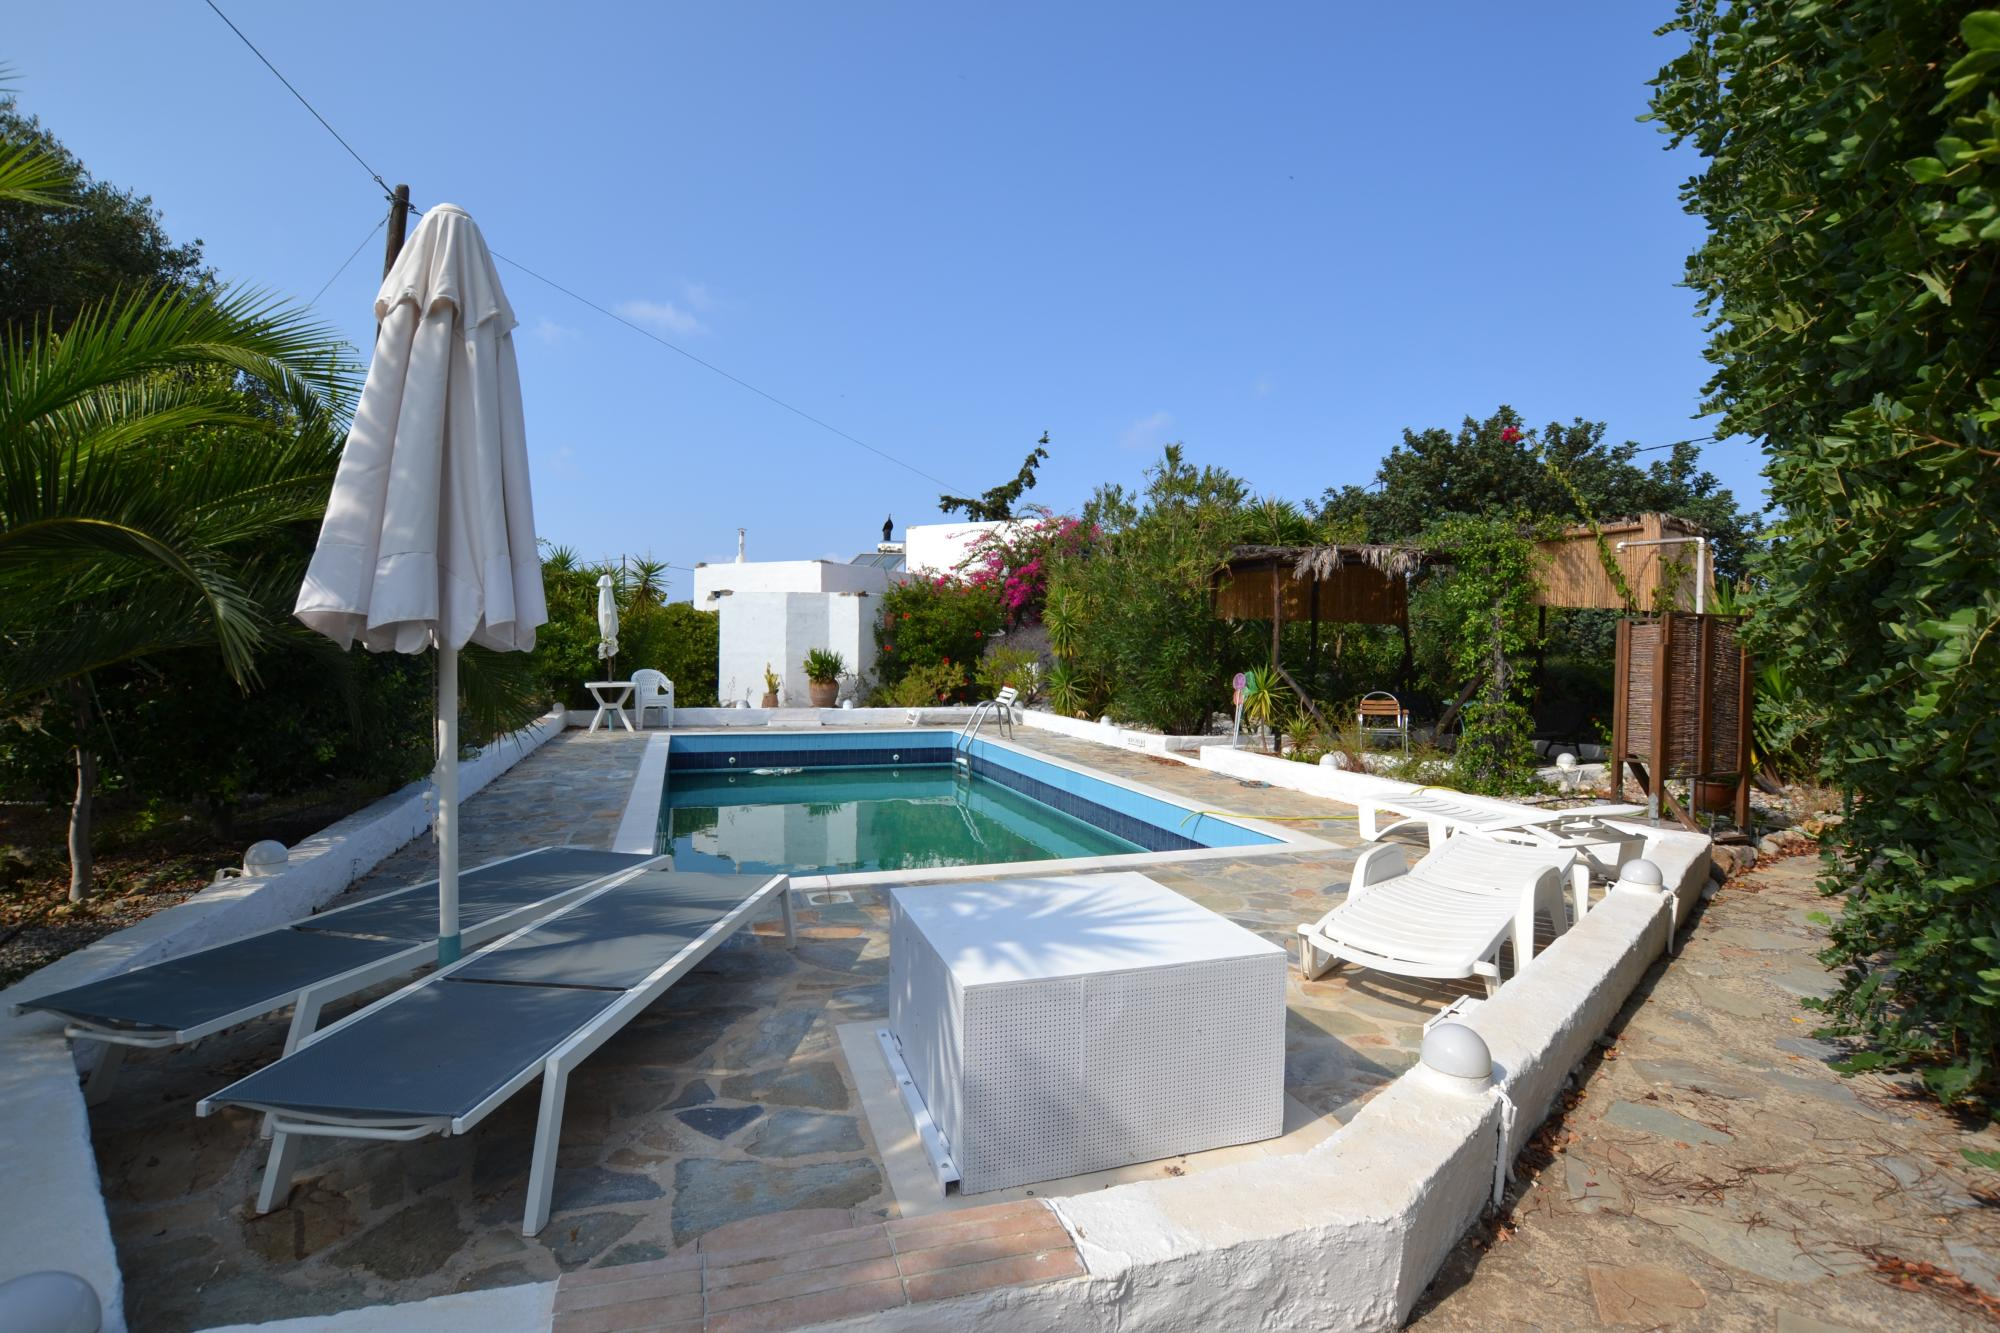 3 Cretan-styled detached houses with pool, walking distance to beach. Sissi